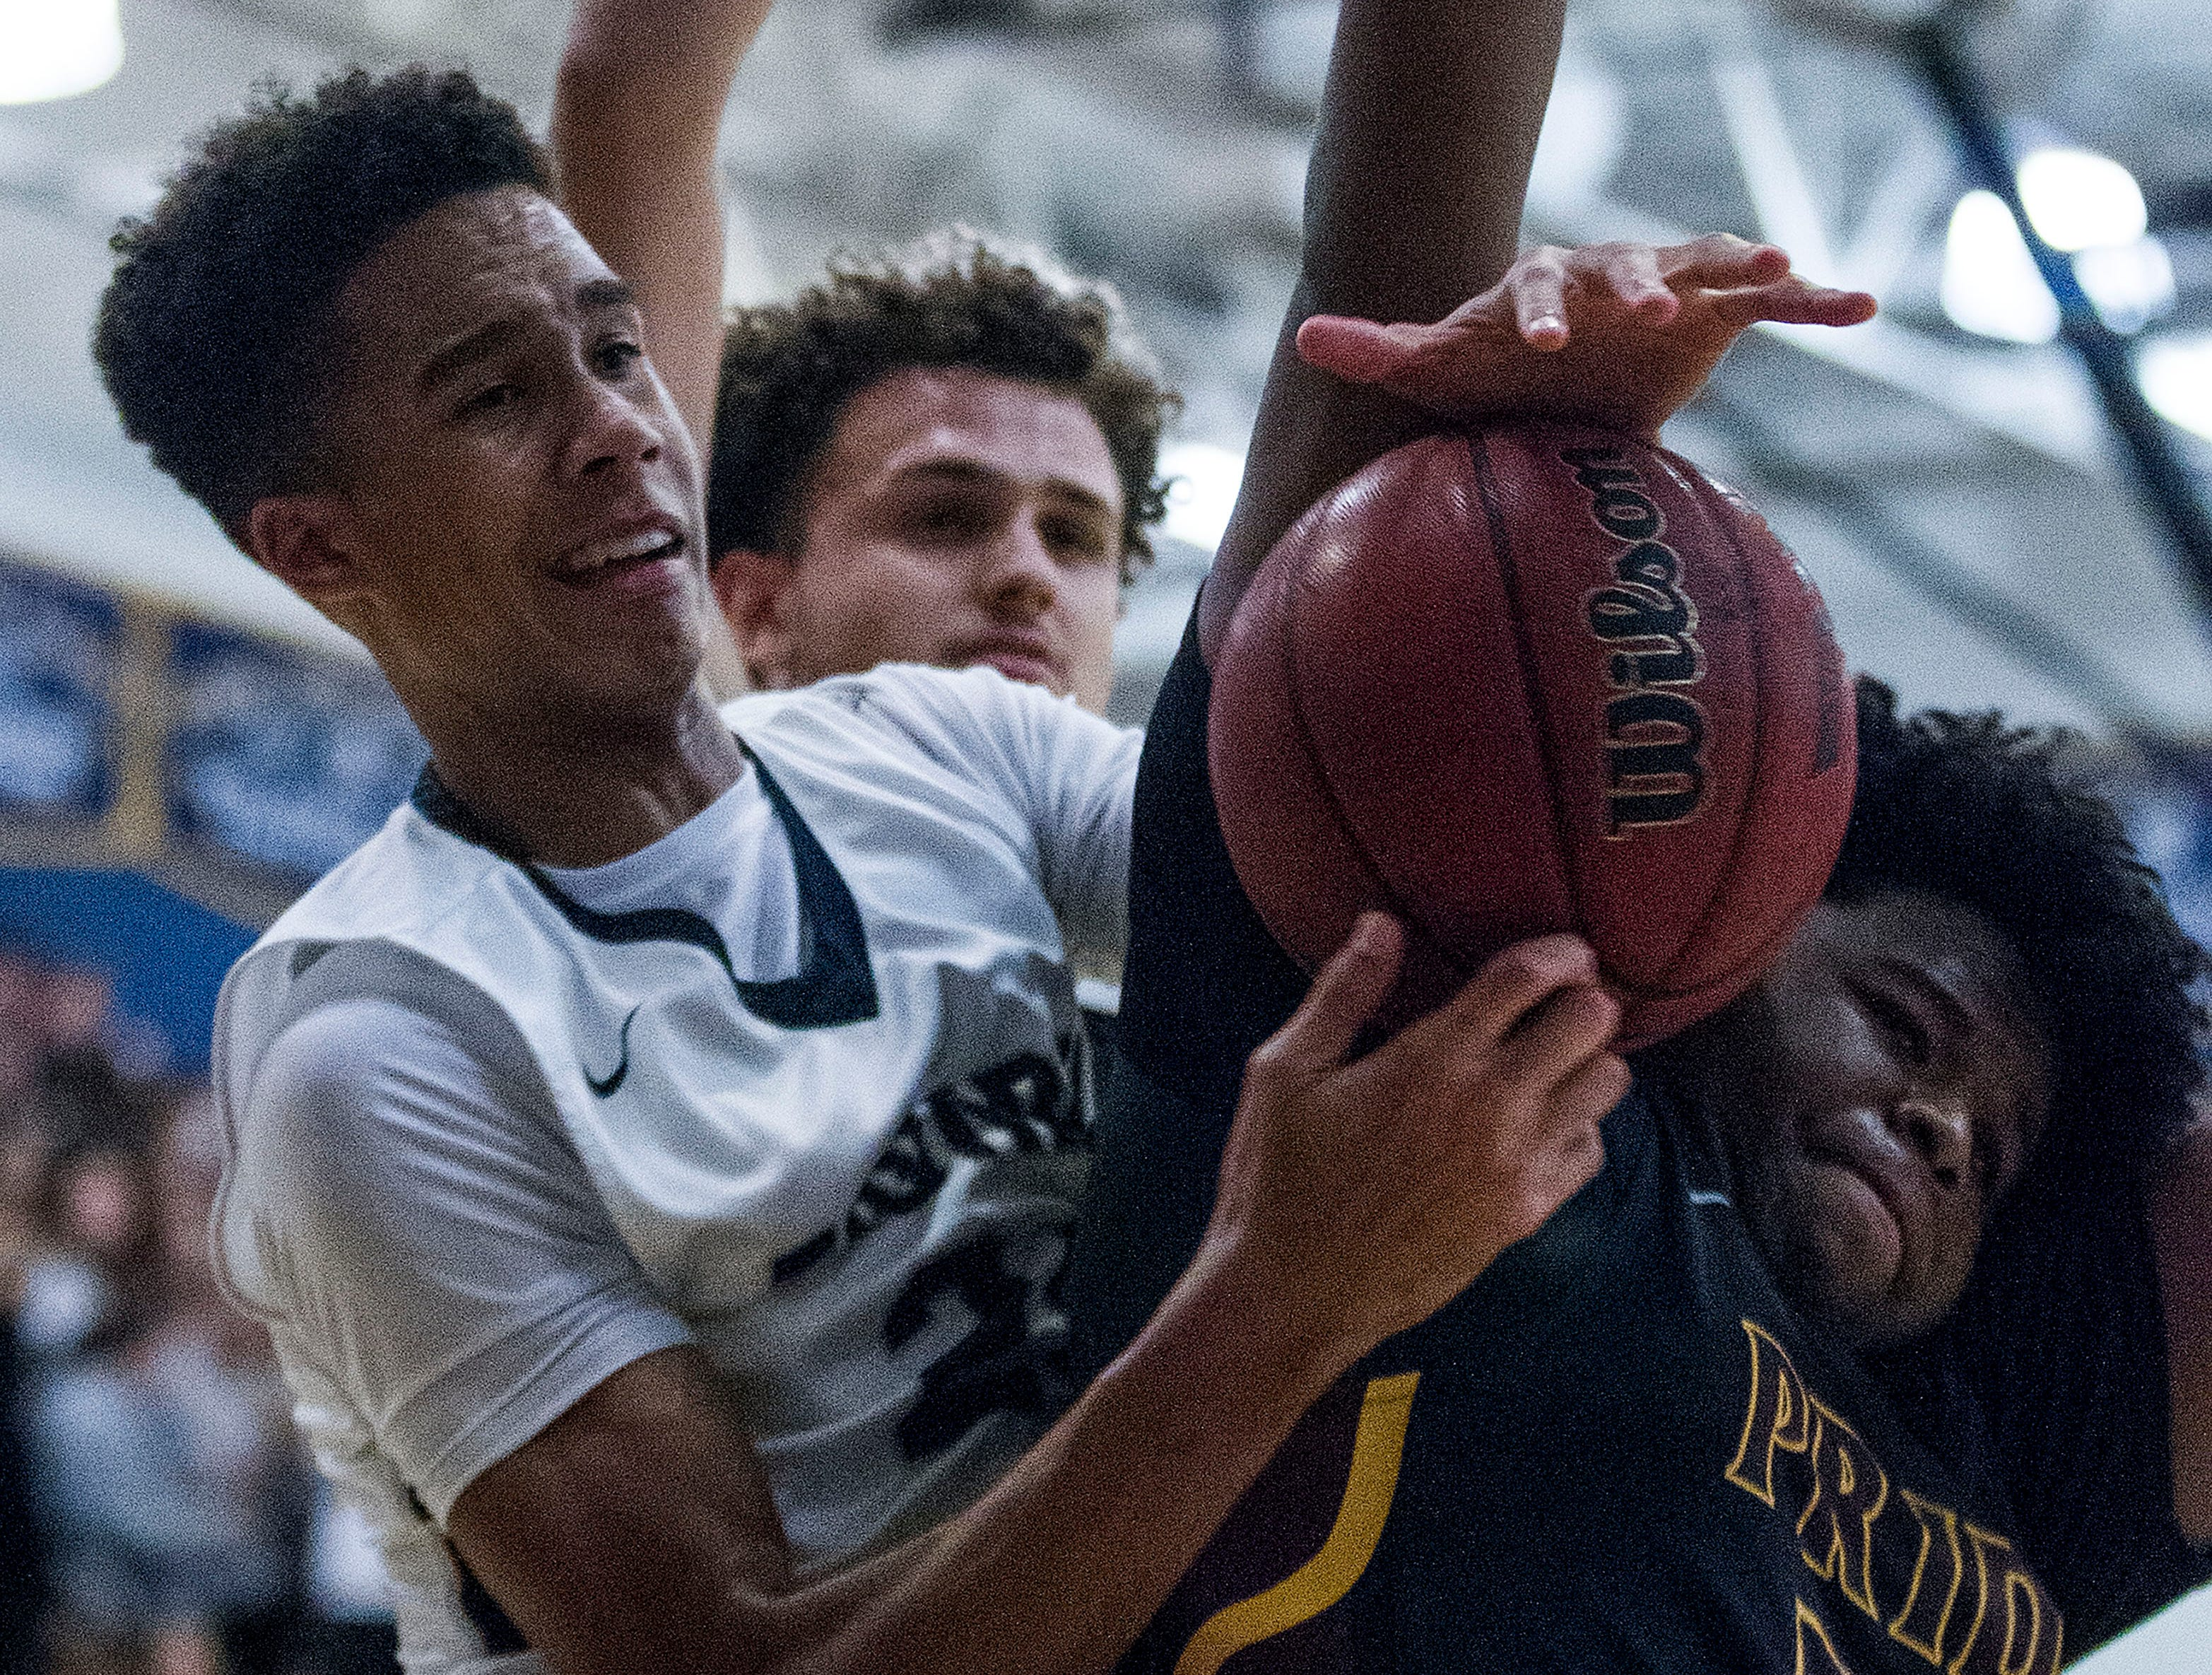 Desert Vista's Osasere Ighodaro (24) gets tangled up with Mountain Pointe's Kalil Simmons (35) during in the first half of their game at Desert Vista High School in Phoenix, Friday, Jan.11, 2019.